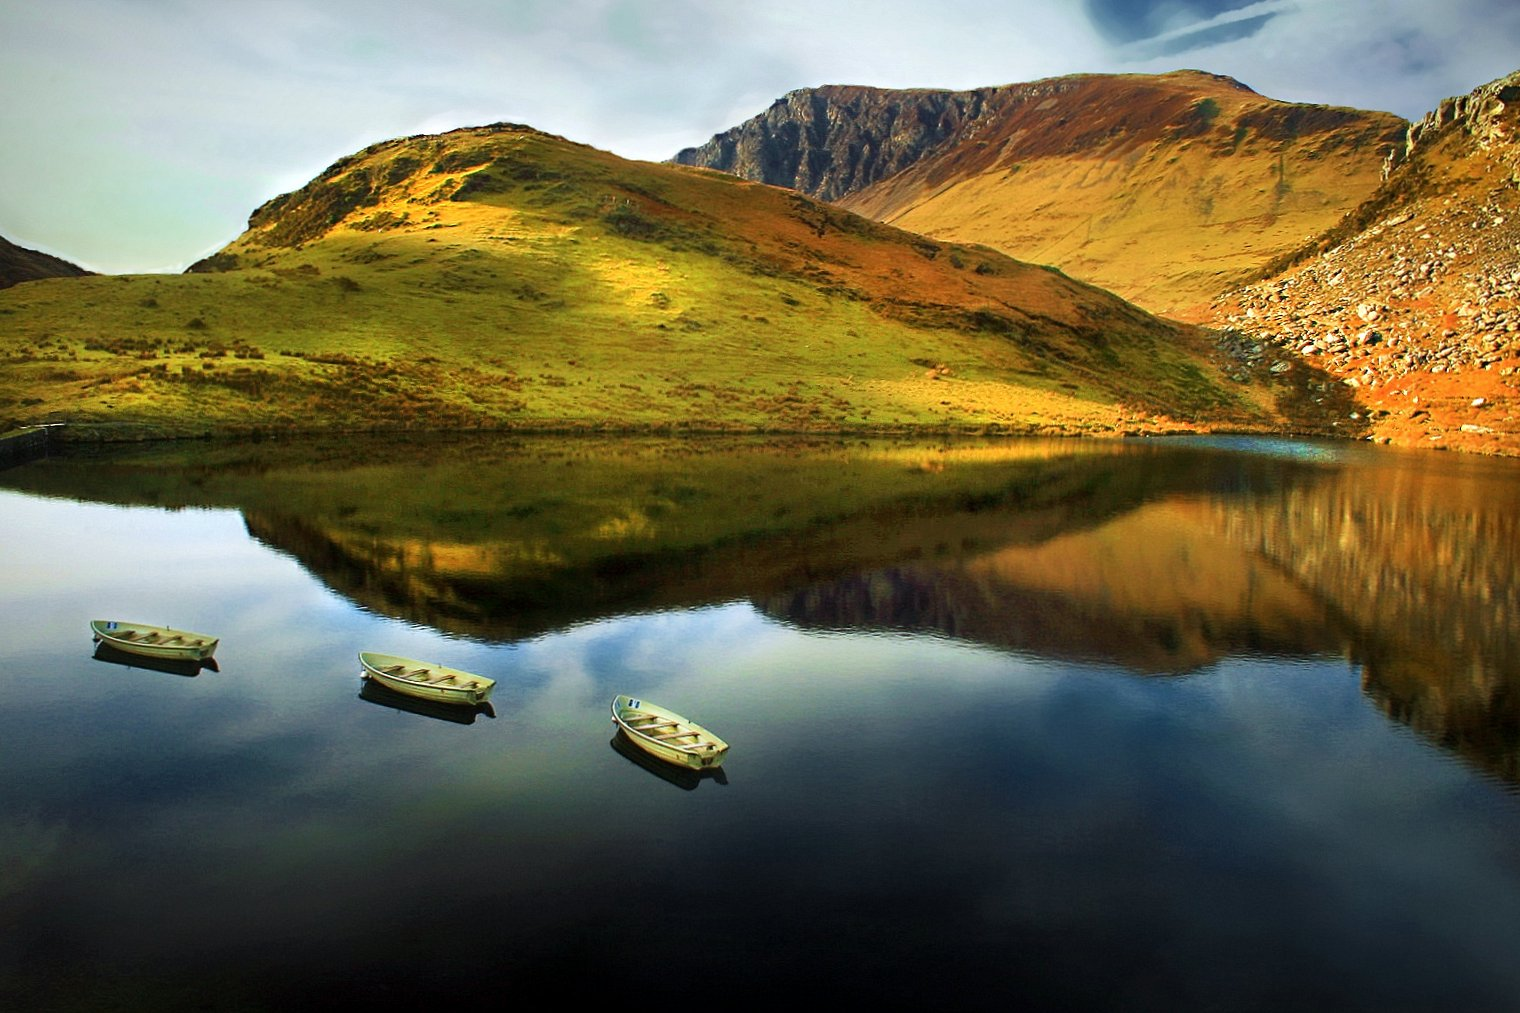 The Floating Island Of Llyn Y Dywarchen